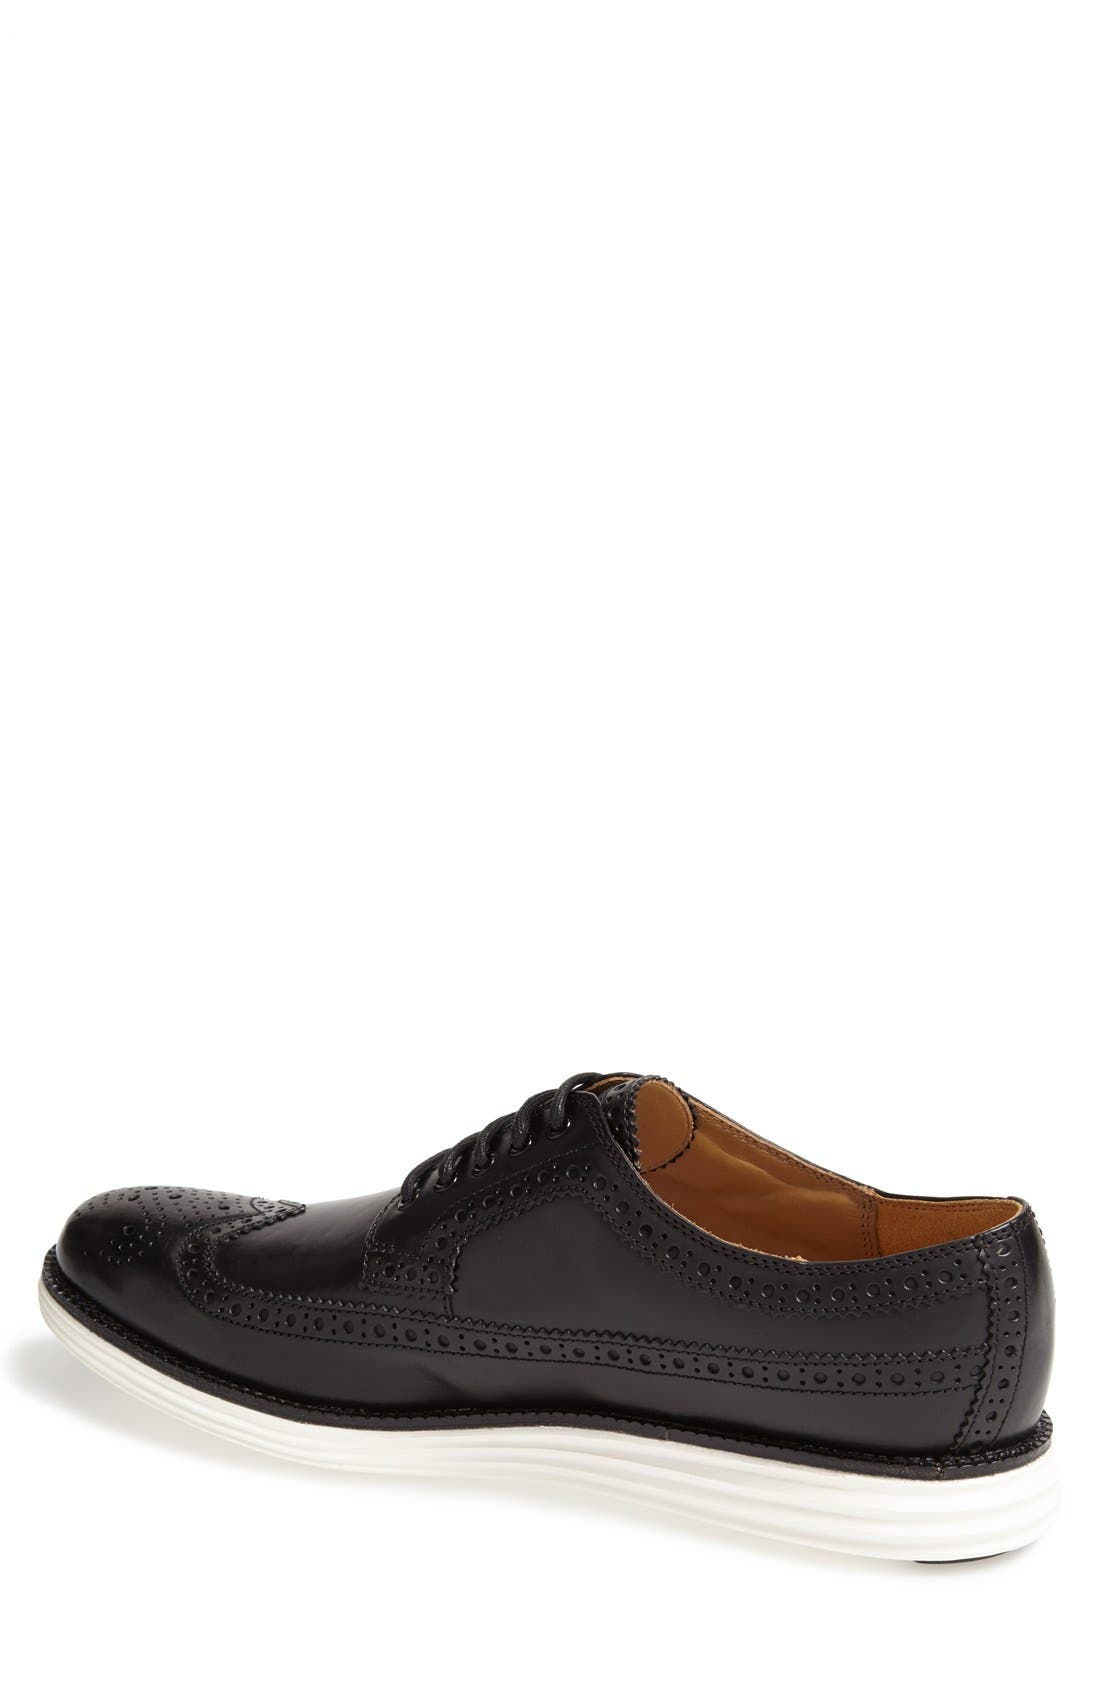 COLE HAAN,                             'LunarGrand' Wingtip,                             Alternate thumbnail 2, color,                             001